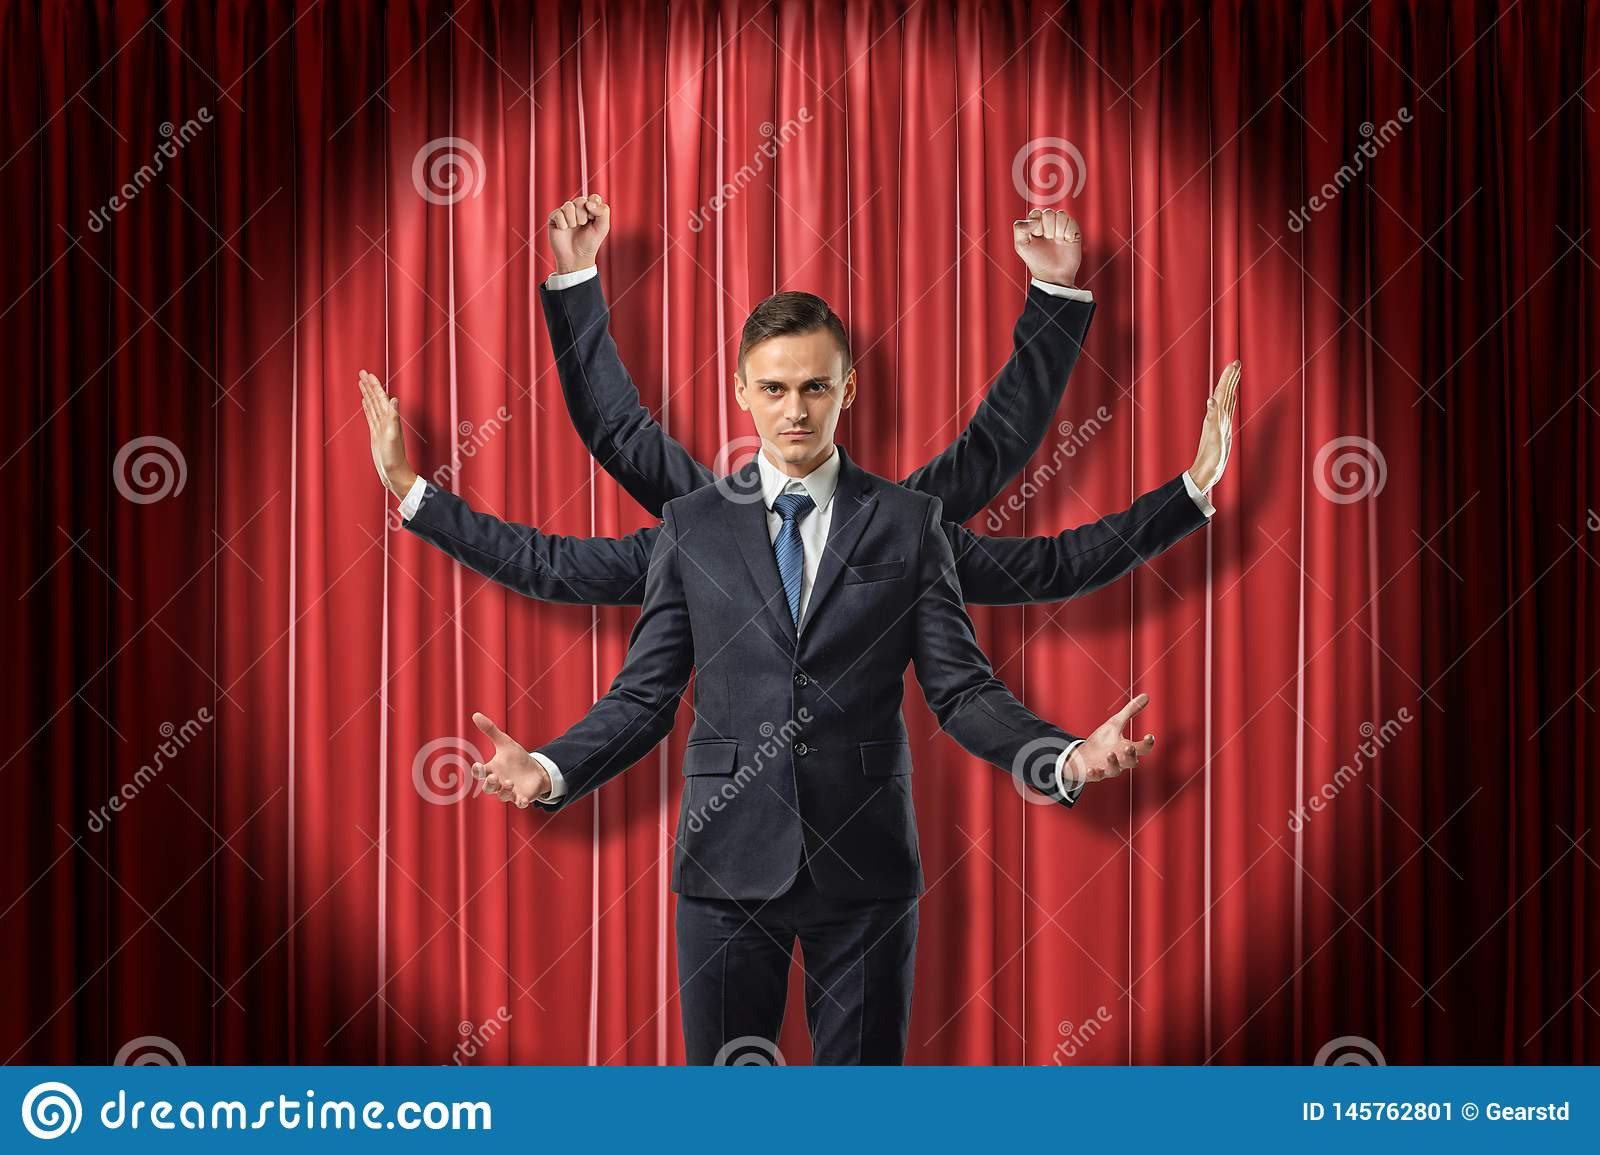 Front view of multiarmed businessman raising hands like Shiva, standing lit up by spotlight against red stage curtain.